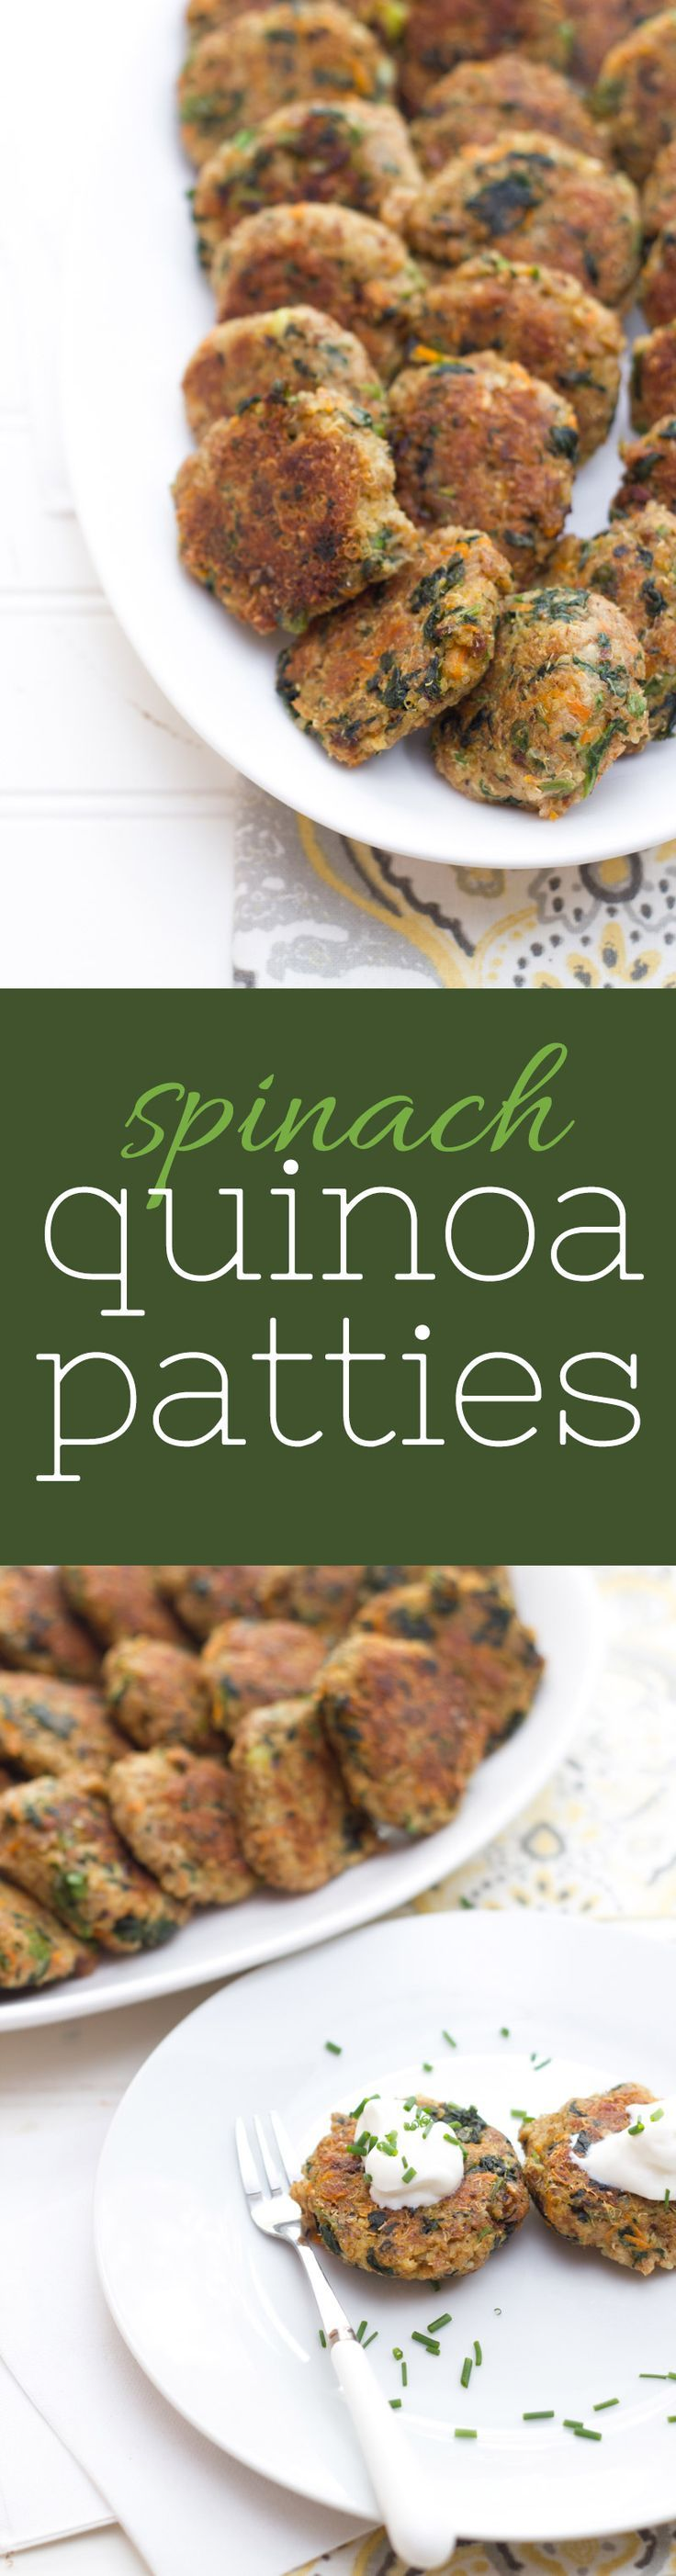 Showcase the power of two vegetarian superfoods in these spinach and quinoa patties. Perfect for snacks, lunches or dinner! #spinach #quinoa